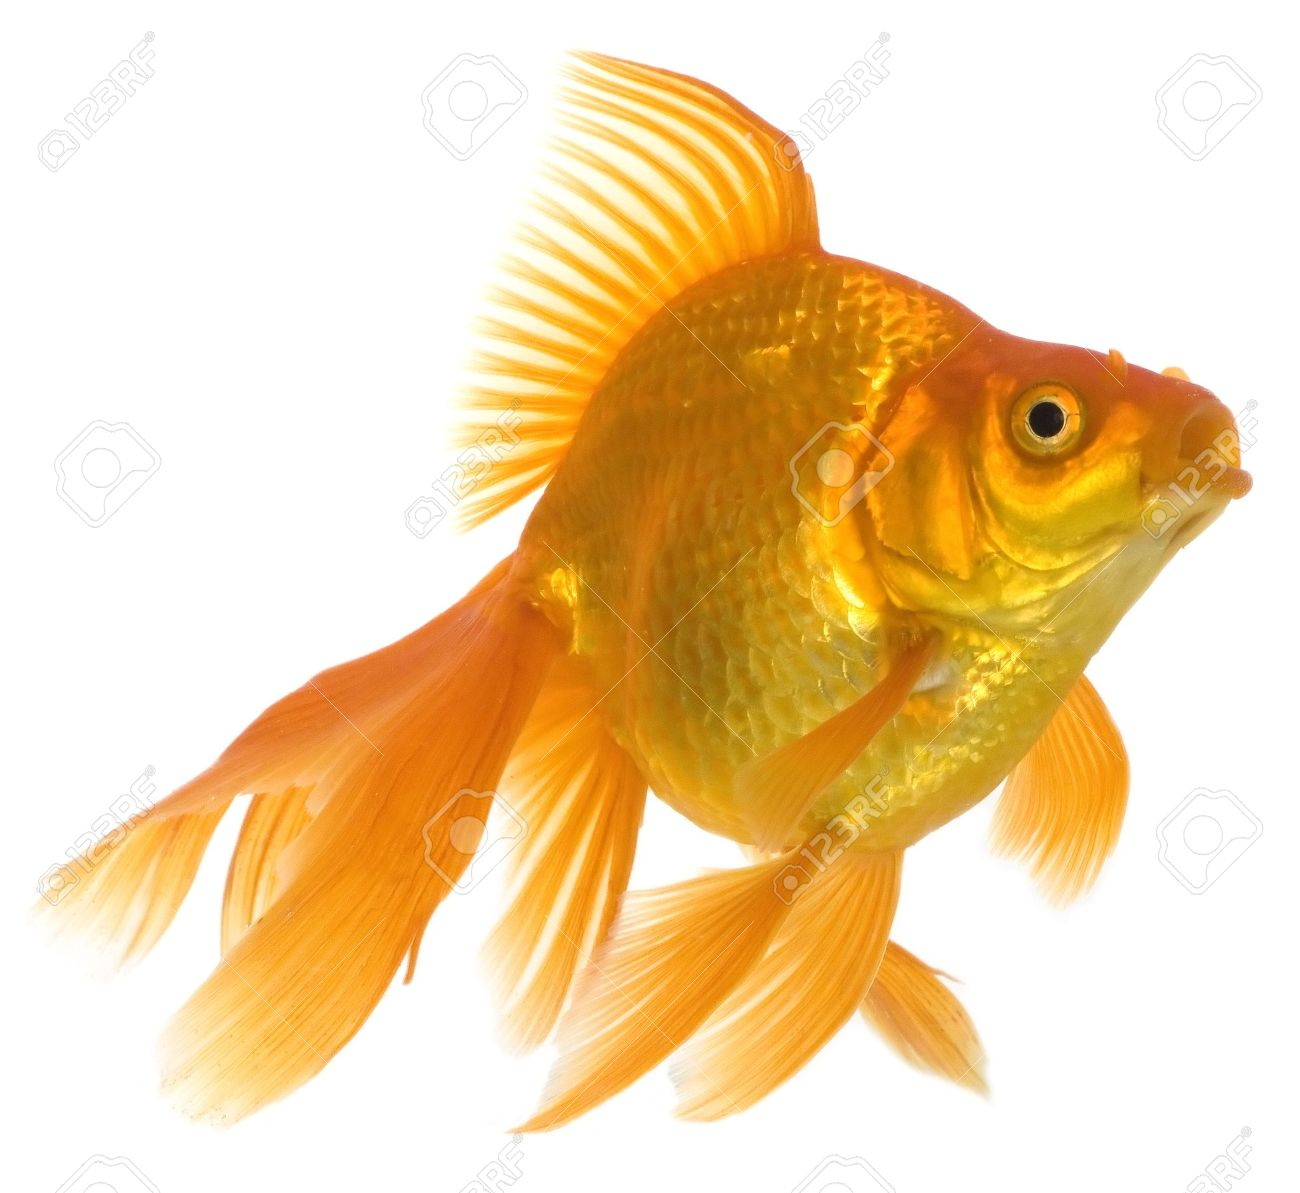 Home animals. Golden fish. Golden swimming fish in aquarium on white background Stock Photo - 7403263